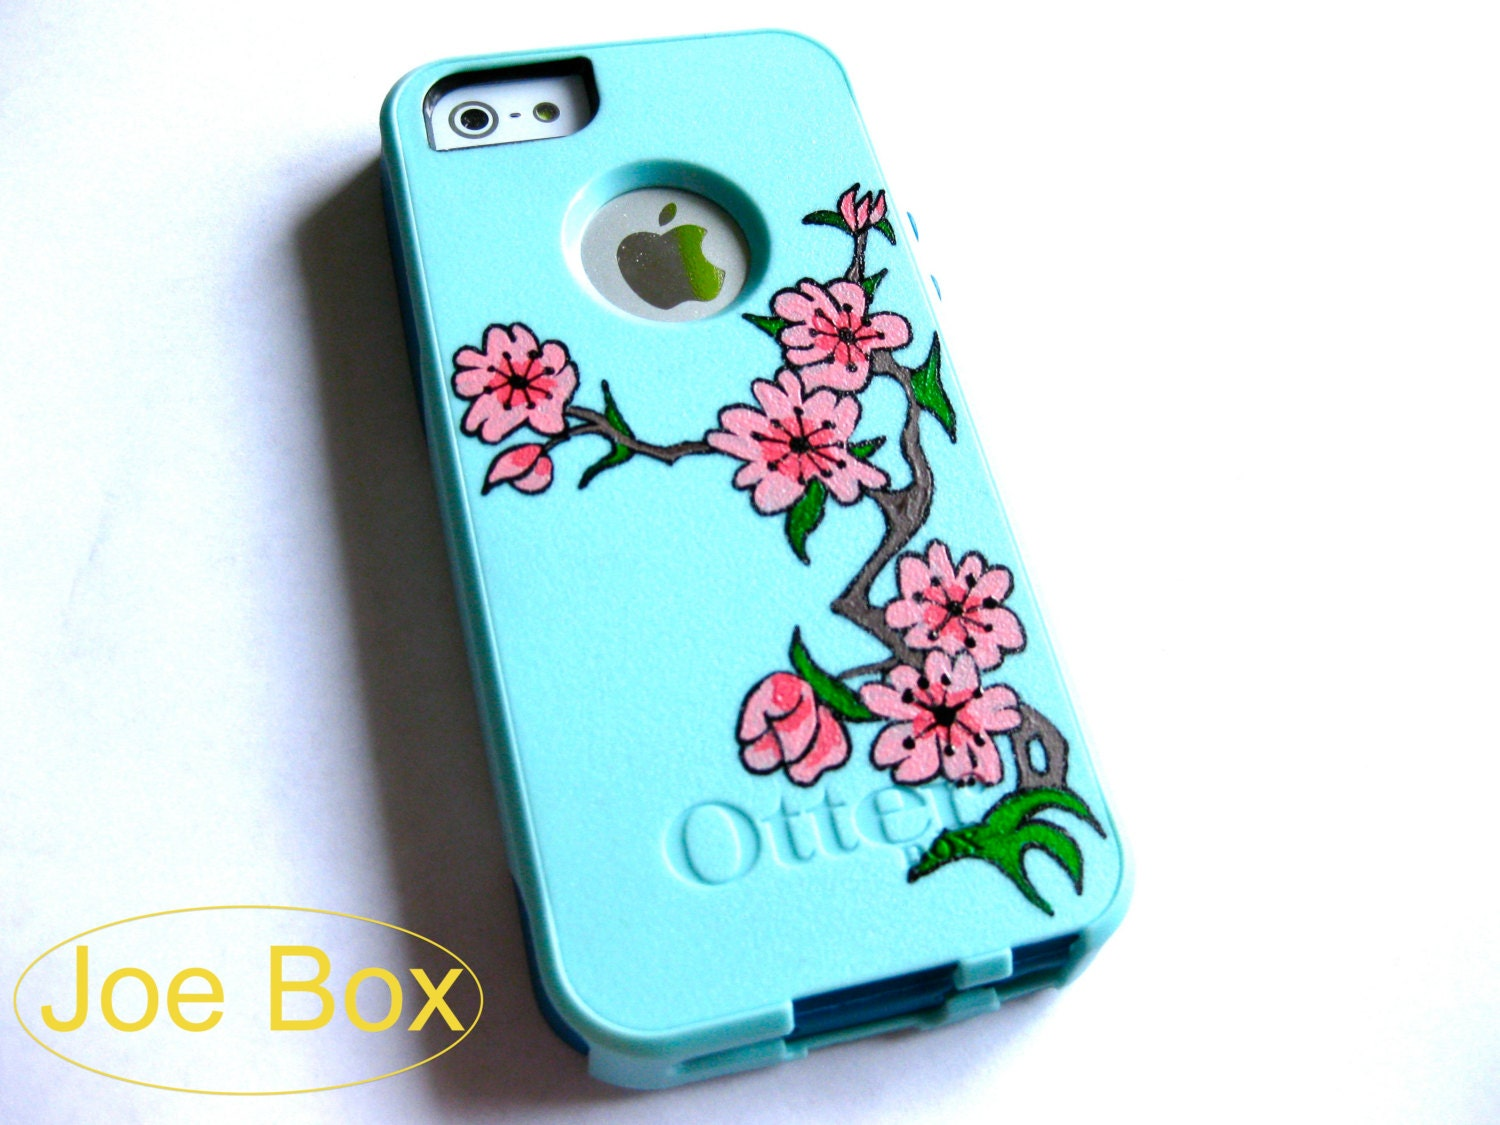 new product 9e0aa d4937 Sale otterbox iphone 5 case, case cover iphone 5s otterbox ,glitter  otterbox case,otterbox iPhone 5,gift,otterbox case